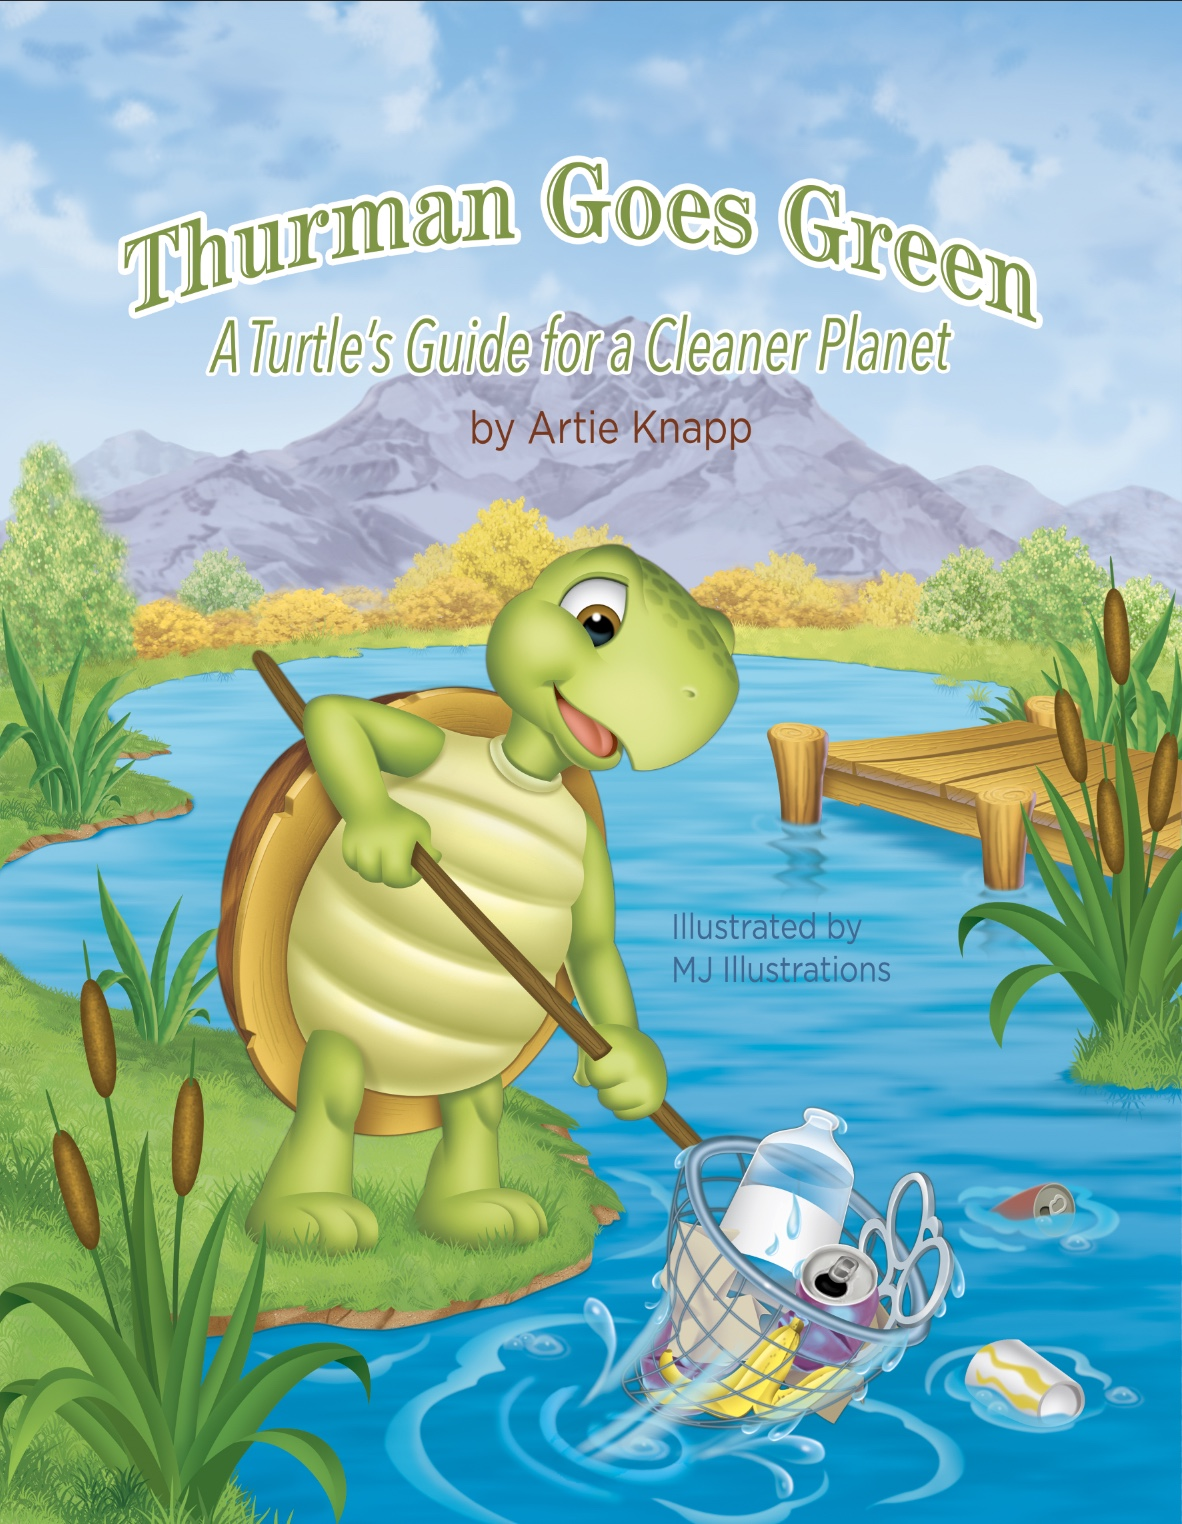 Thurmnan Front Cover